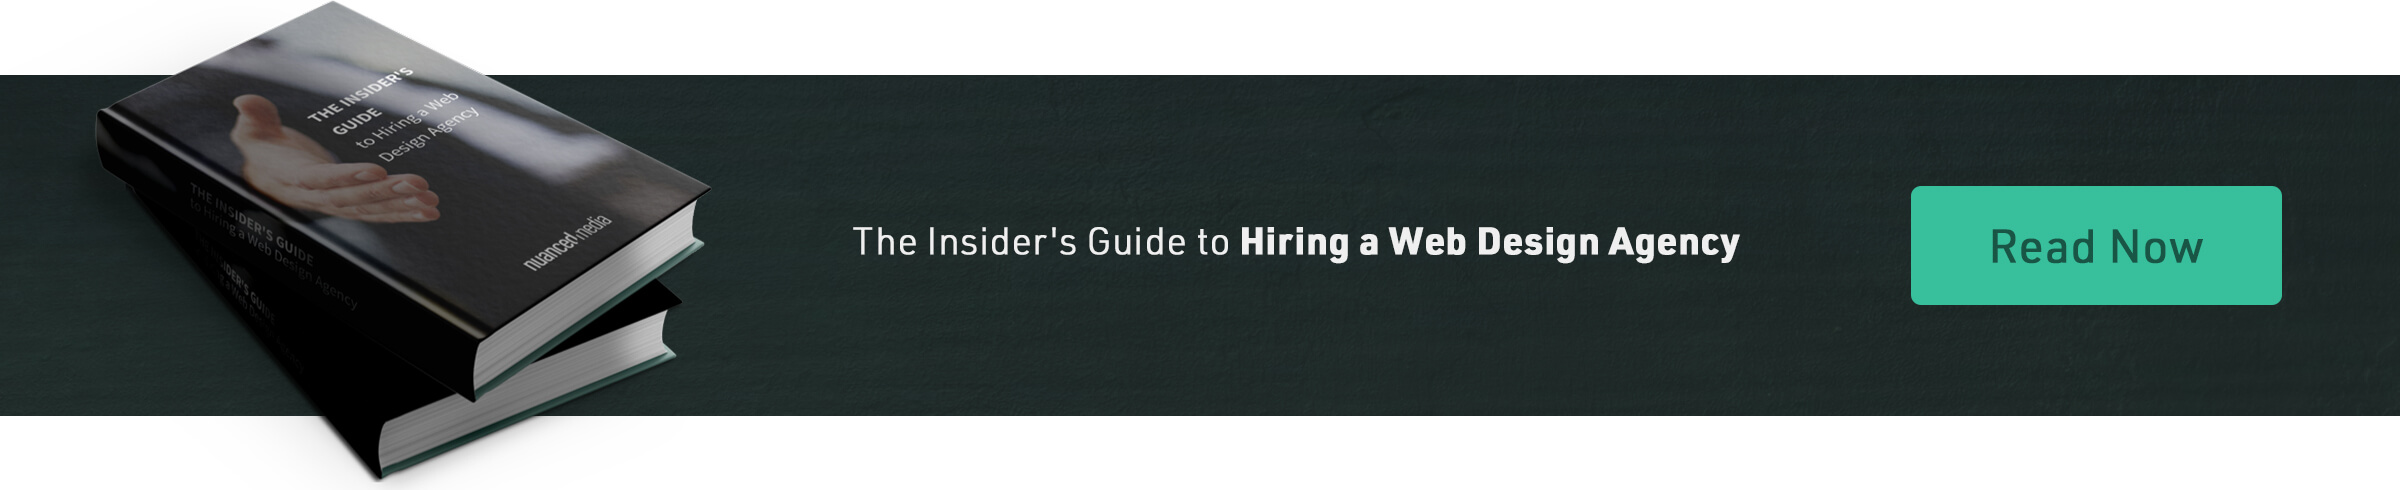 The Insider\'s Guide to Hiring a Web Design Agency